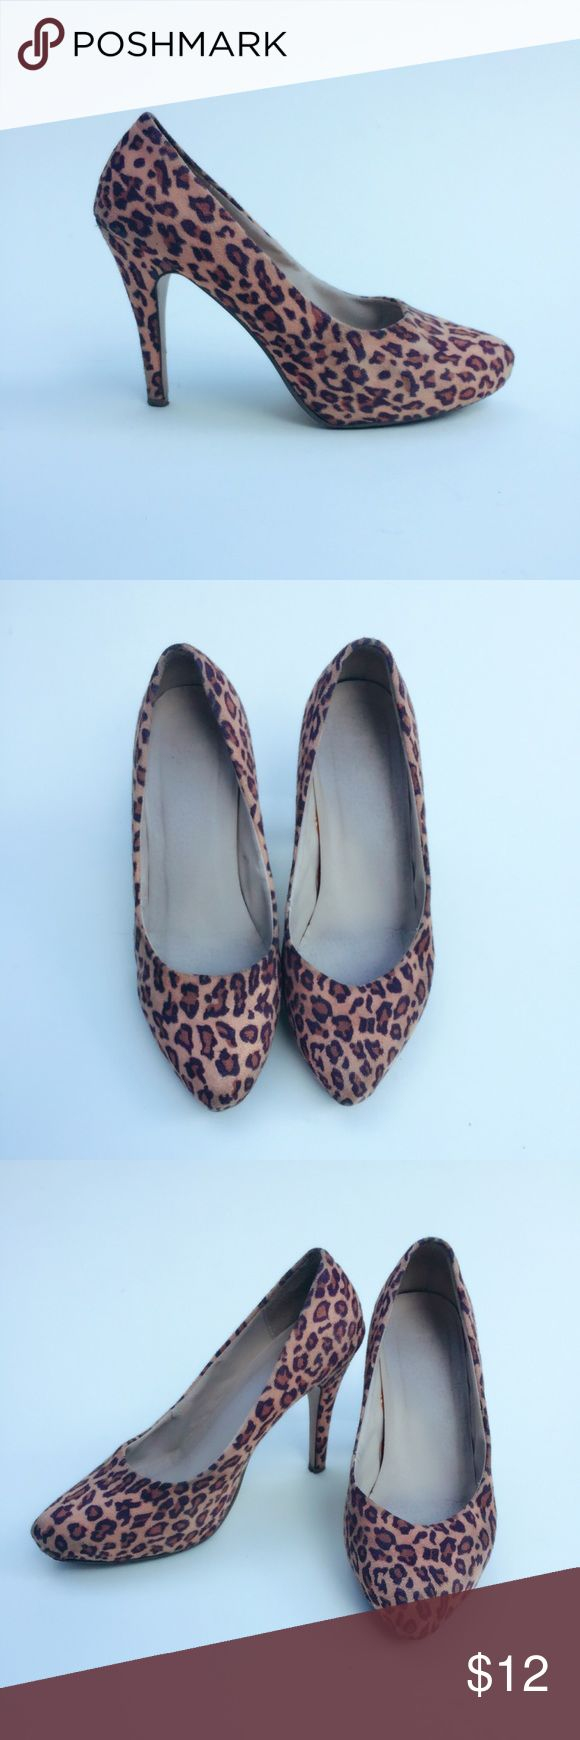 Leopard printed heels Super sassy and cute leopard heels! Comfortable and doesn't cut into your feet because of soft material! Clean insole with no footprints, normal wear and tear at bottom of heels but actual heel support still intact just scuffs on bottom from walking. Heel height: 4.5 inches Shoes Heels